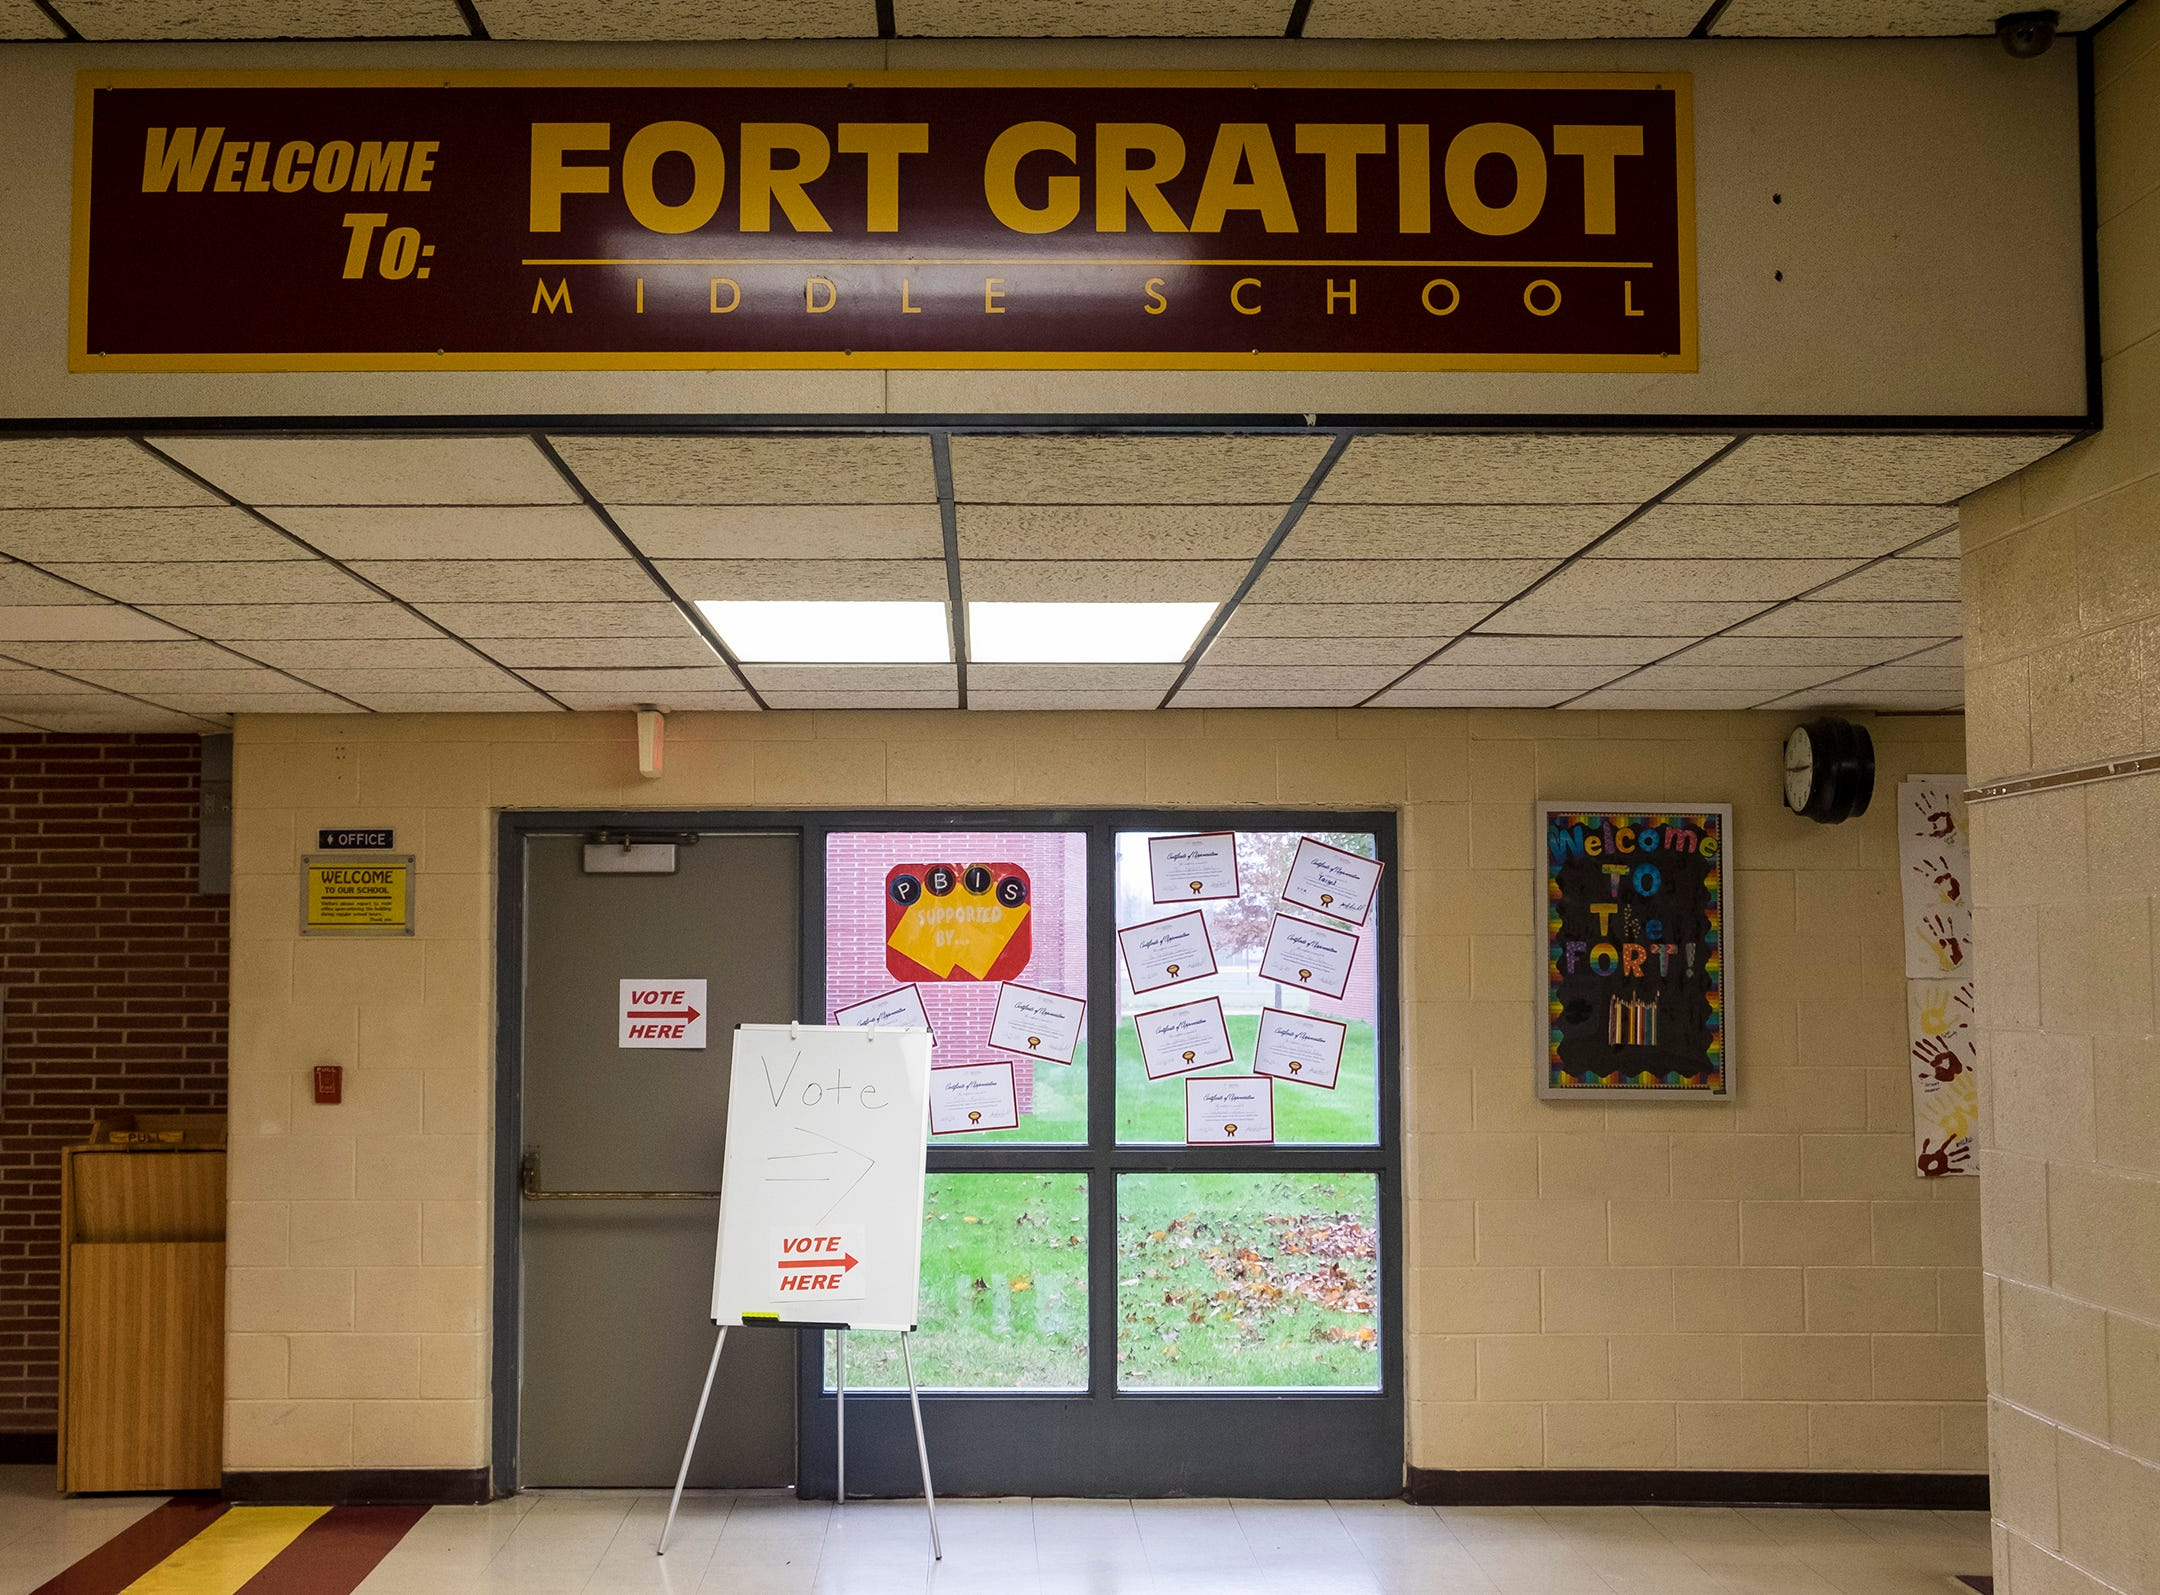 Fort Gratiot Middle School served as the precinct 2 voting location Tuesday, Nov. 6, 2018 during the mid-term elections.